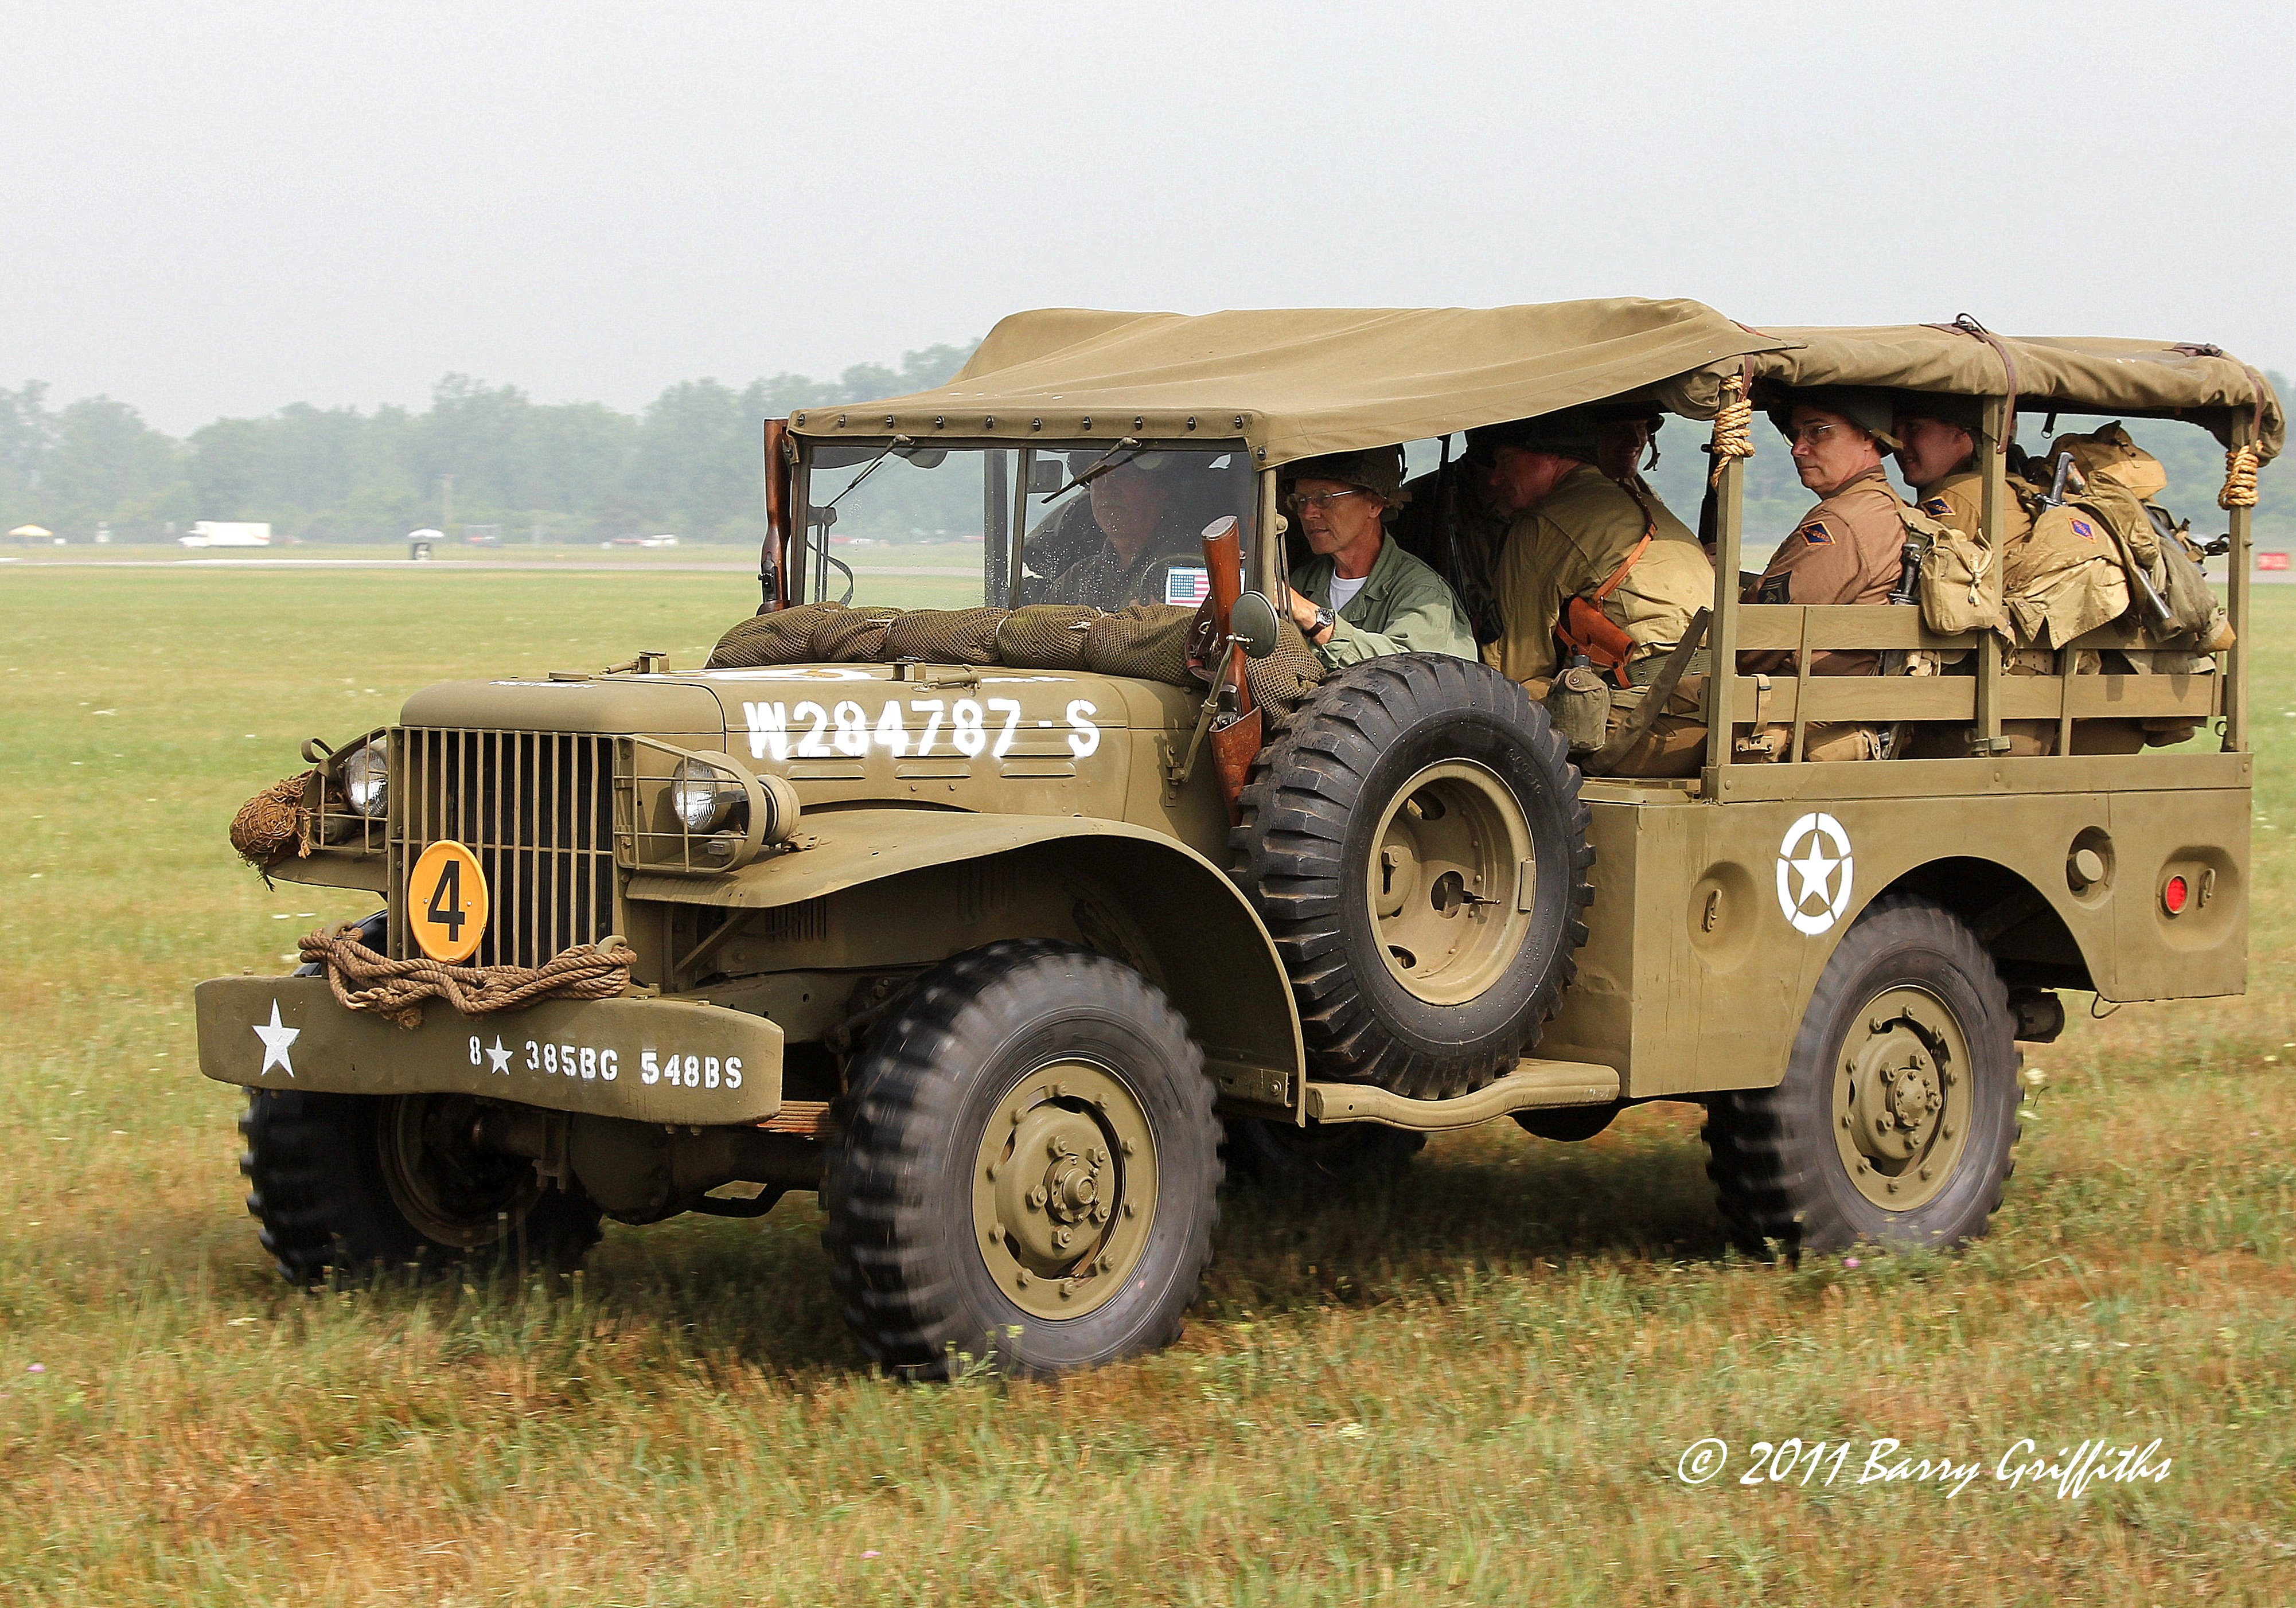 https://topworldauto.com/photos/Dodge/60/49/1309_dodge-wc-51-series-cargo-truck-3-4-ton-4x4-us-army-ww-ii-vintage.jpg